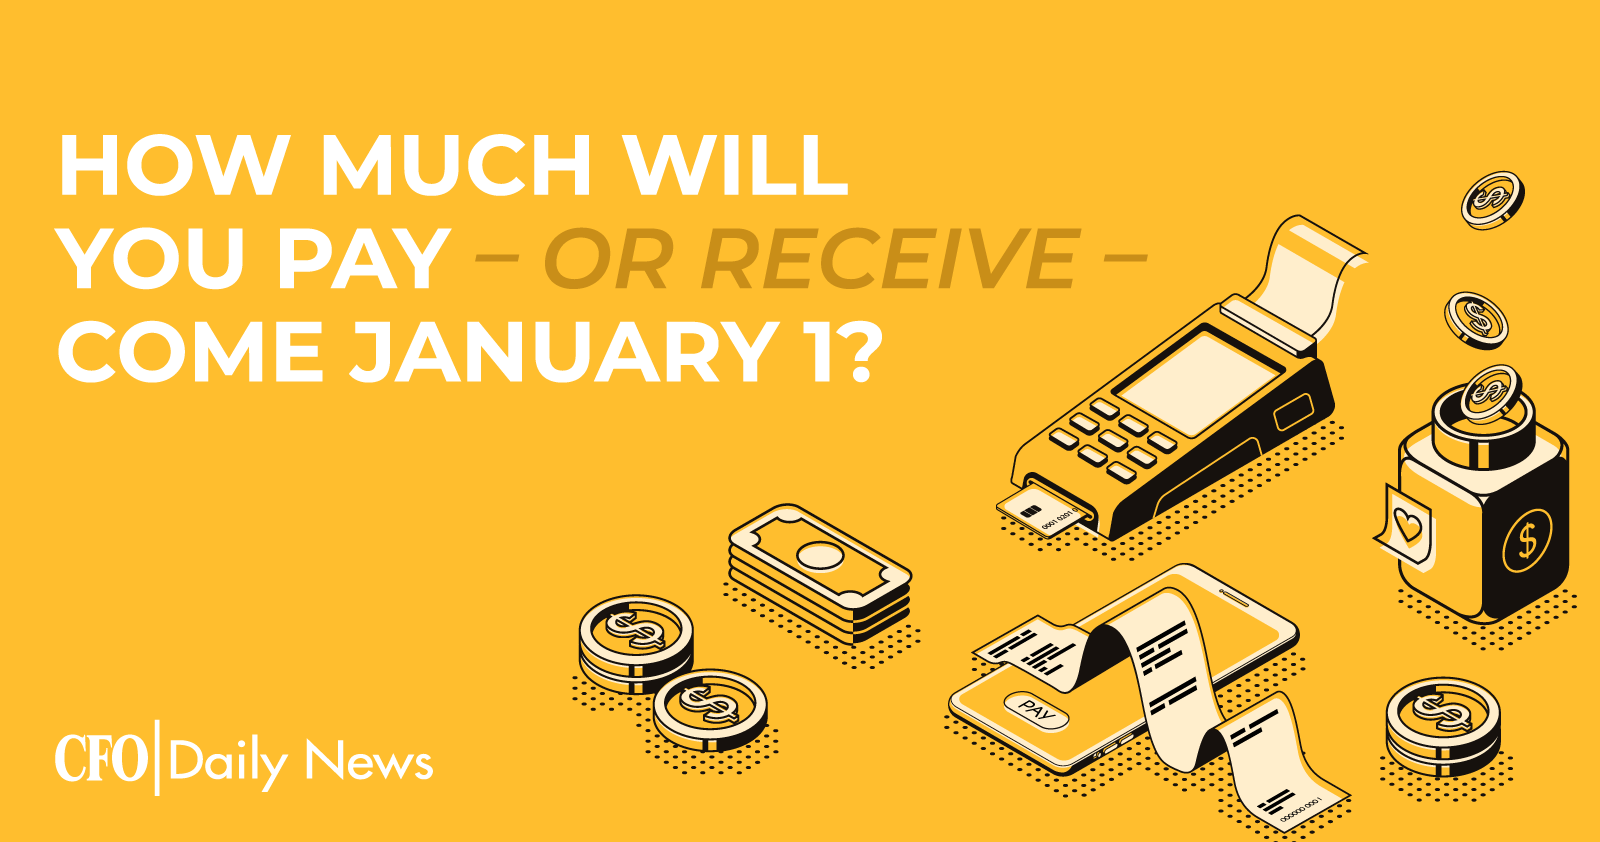 how much will you pay or receive come january 1